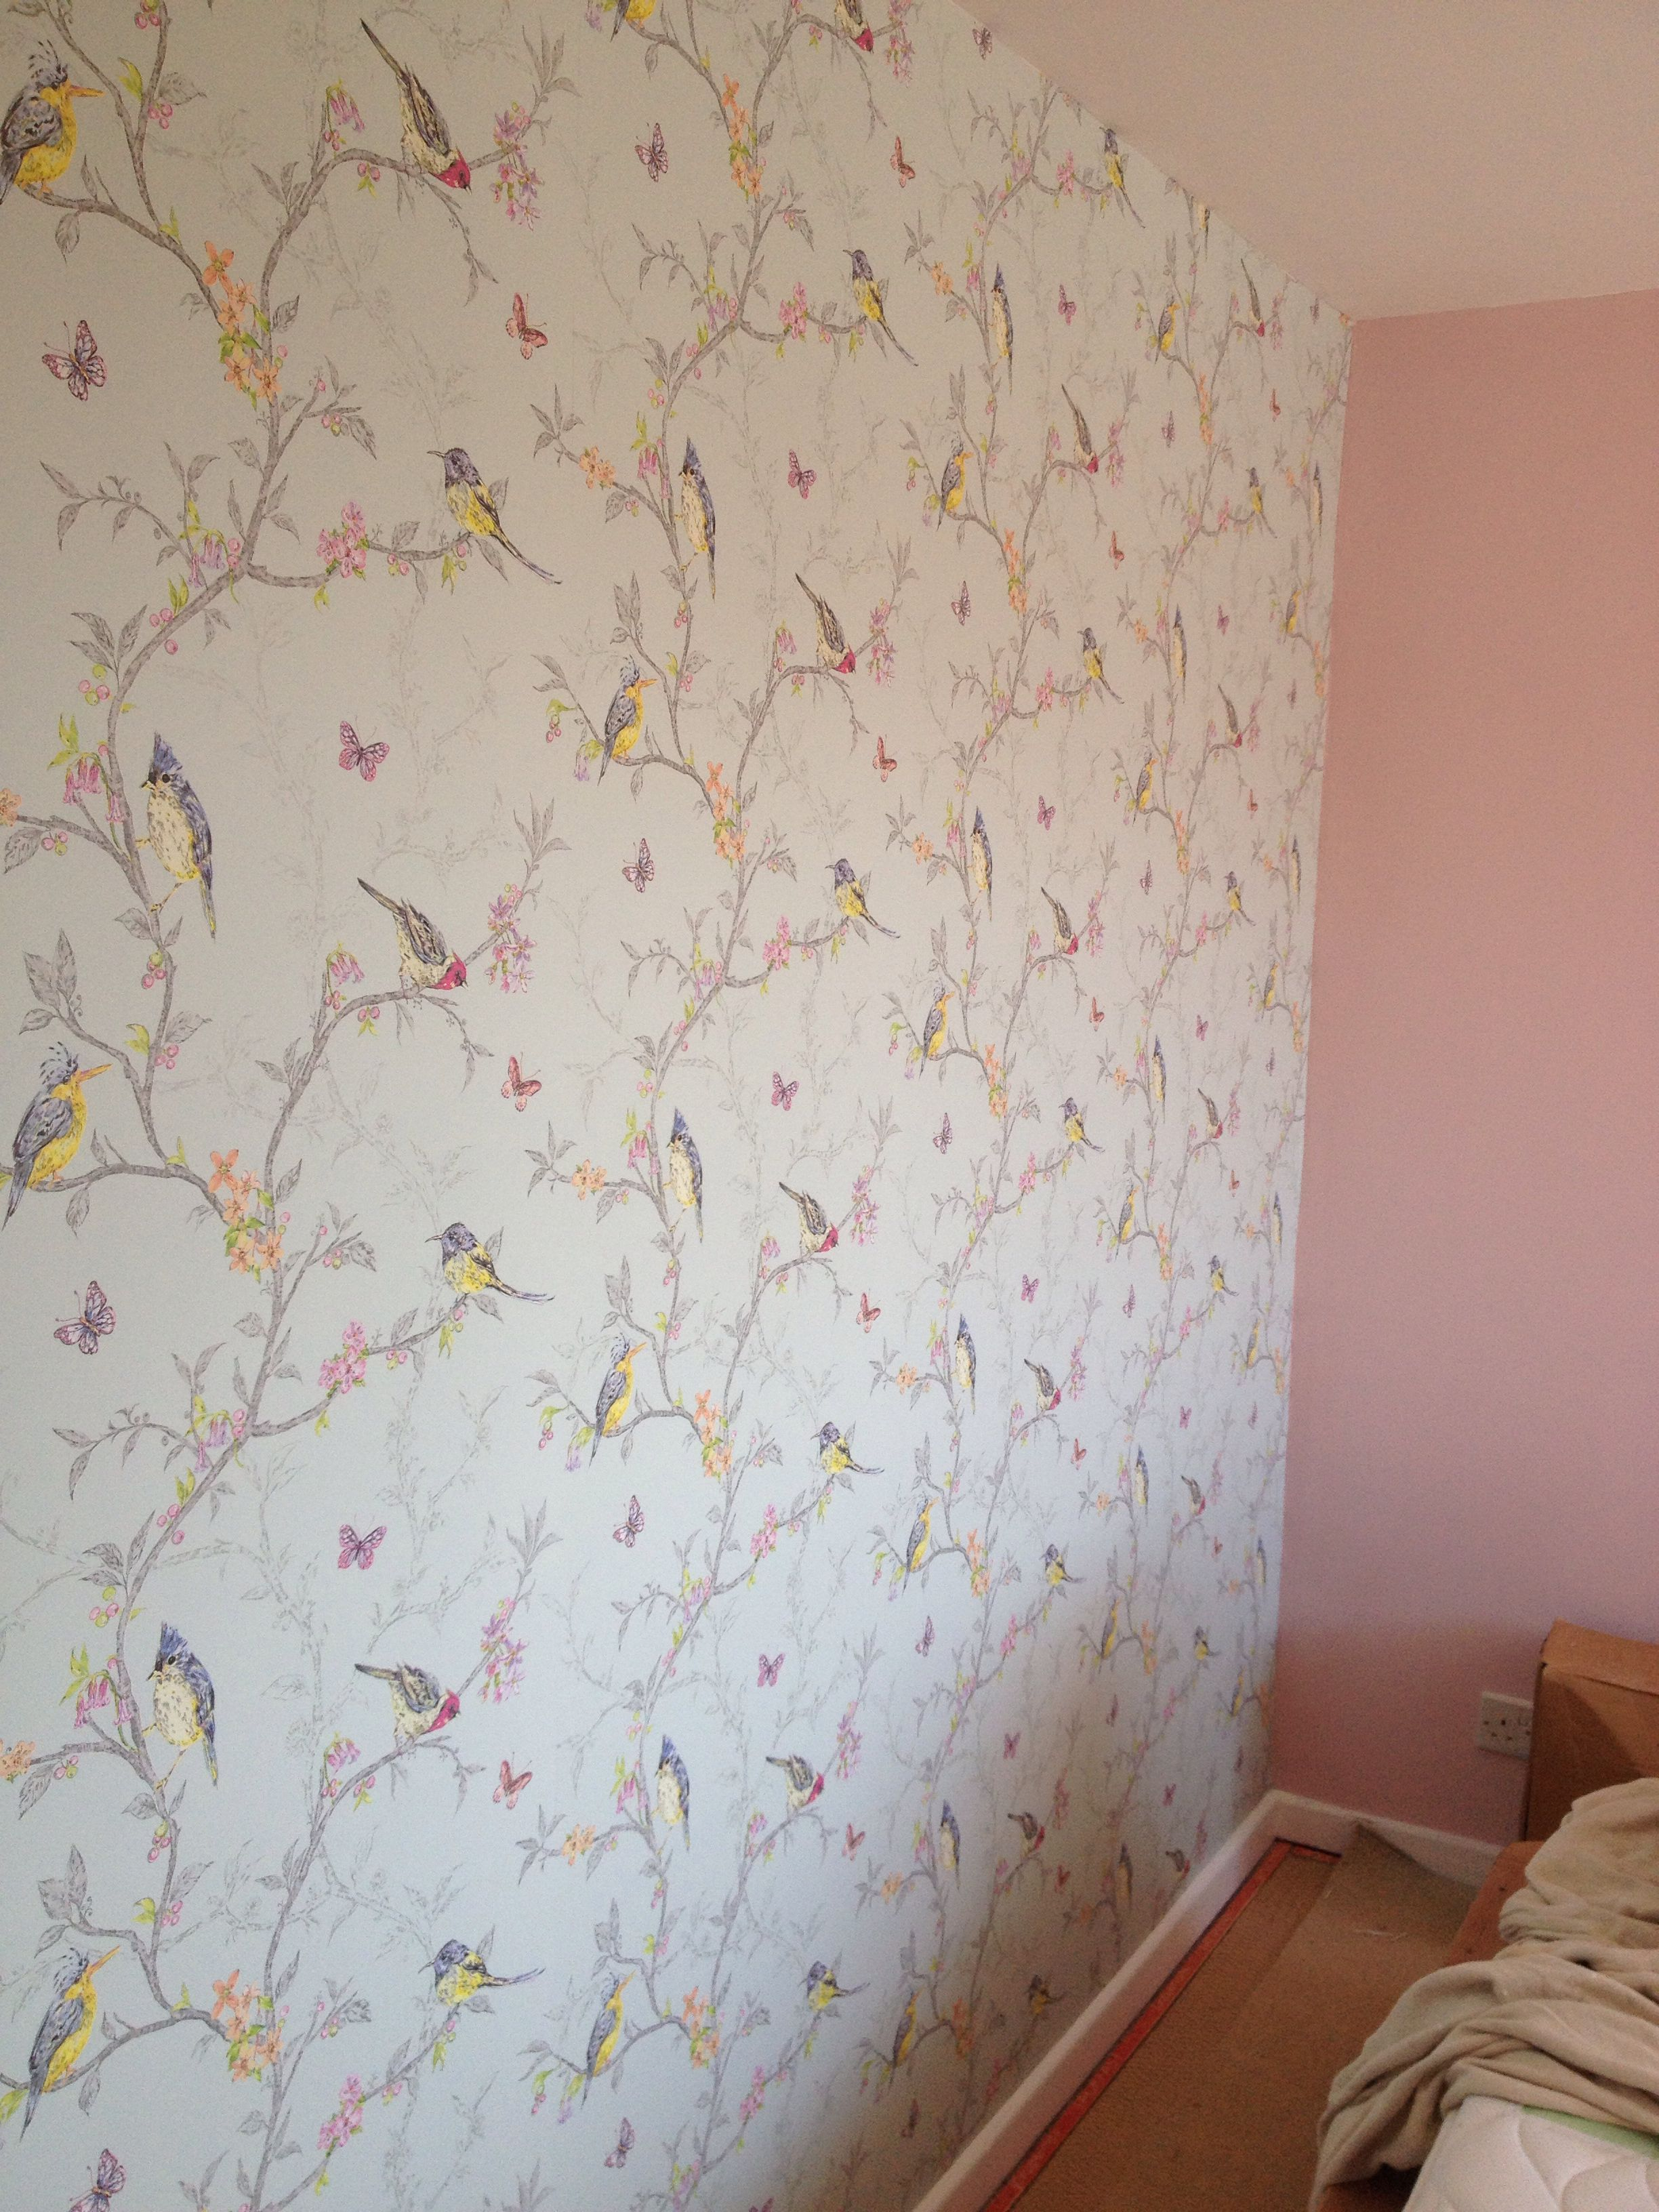 Finished Beautiful Phoebe Wallpaper In Duck Egg Blue From Wallpaperdirect Coordinated With Crown Pink Girl Room Pink Bedroom For Girls Bird Wallpaper Bedroom